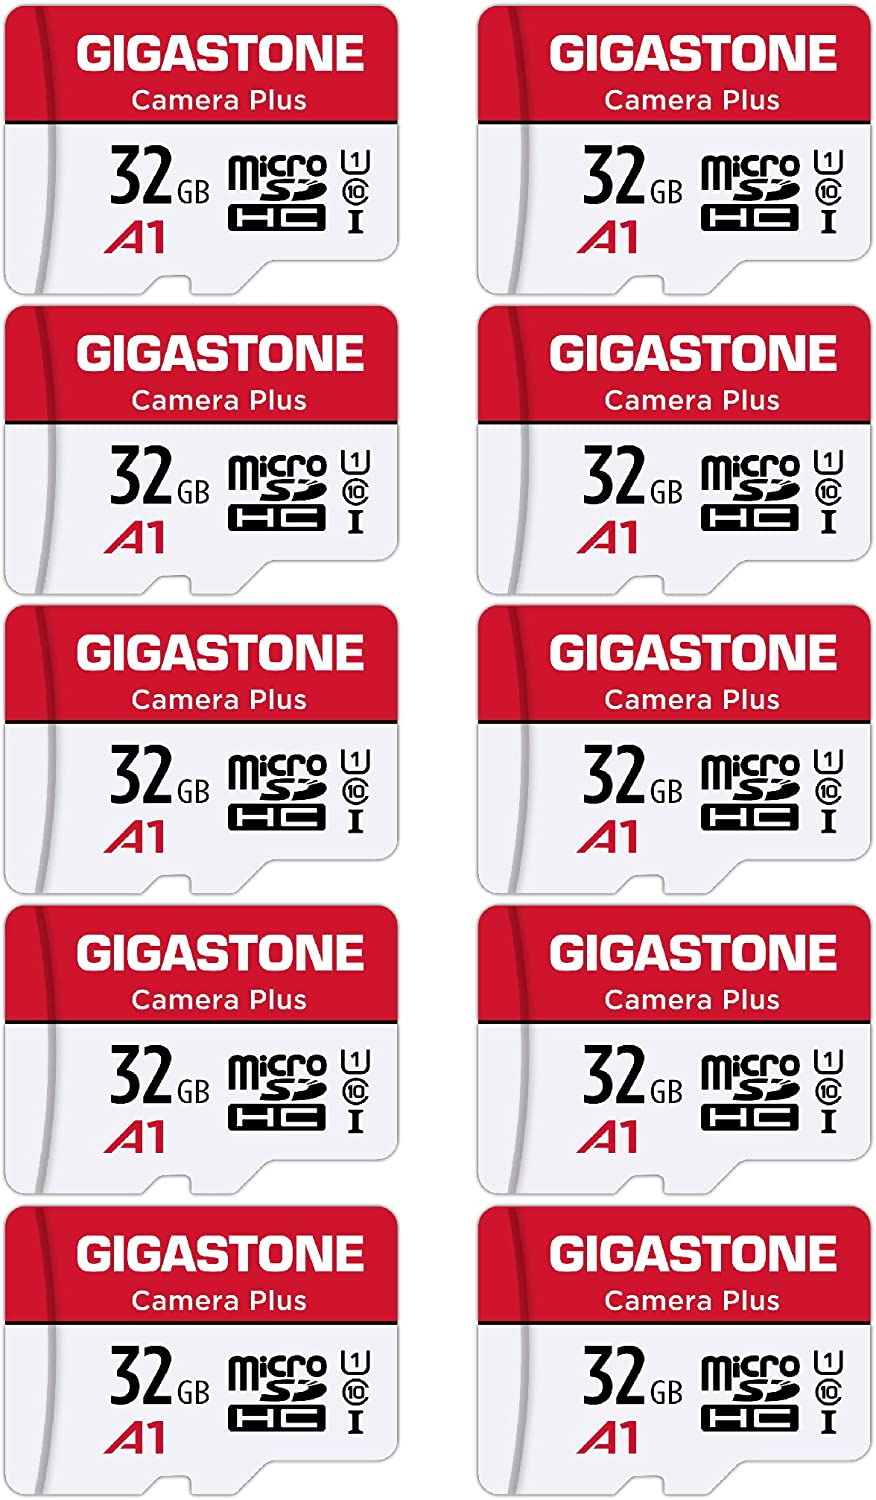 [Gigastone] Micro SD Card 32GB 10-Pack, Camera Plus, MicroSDHC Memory Card for Video Camera, Wyze Cam, Security Camera, Roku, Full HD Video Recording, UHS-I U1 A1 Class 10, up to 90MB/s, with Adapter